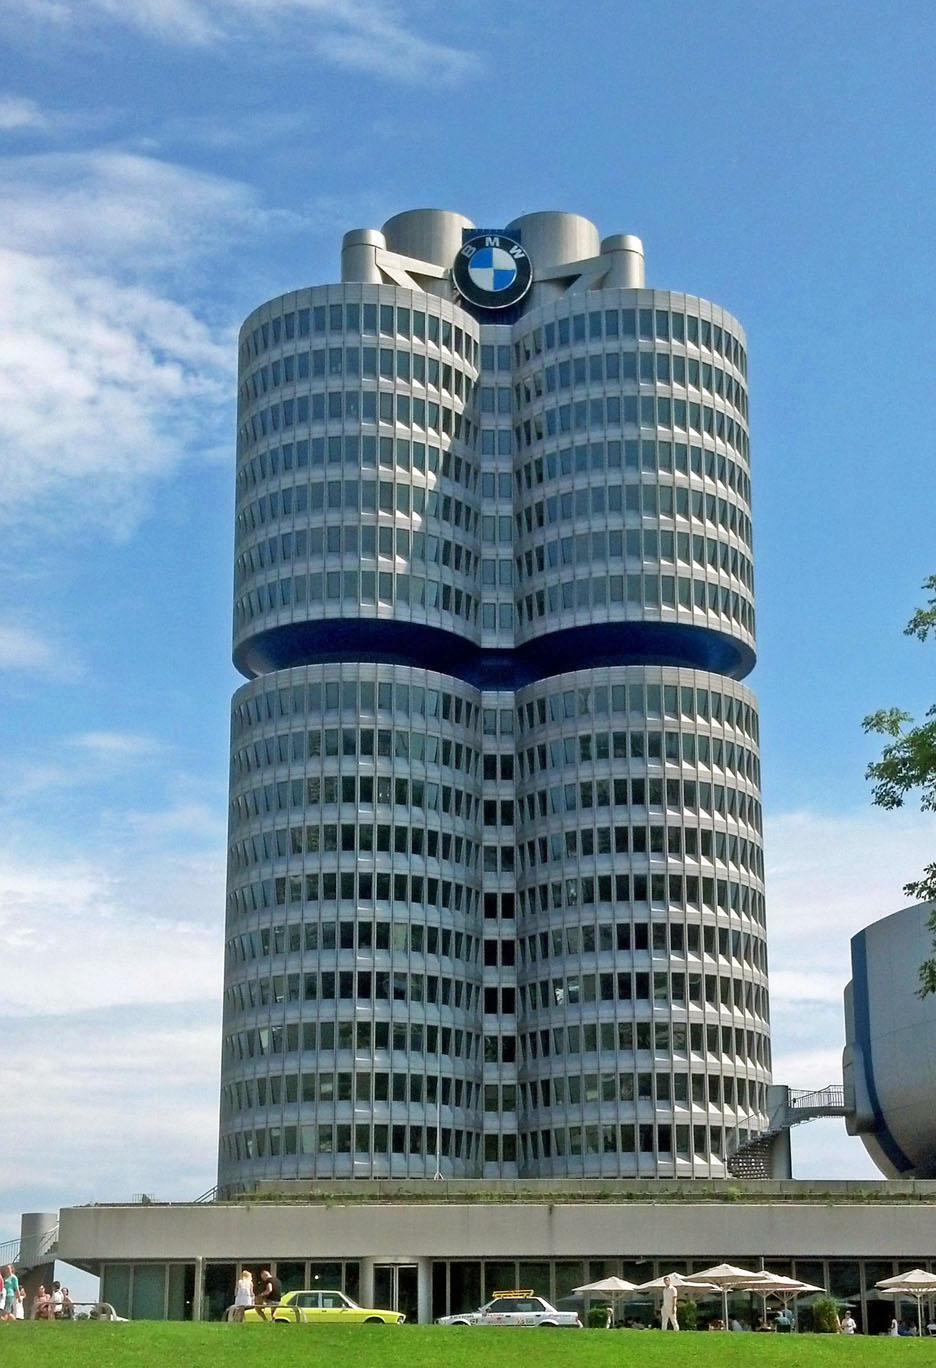 The BMW corporate headquarters north of Munich.